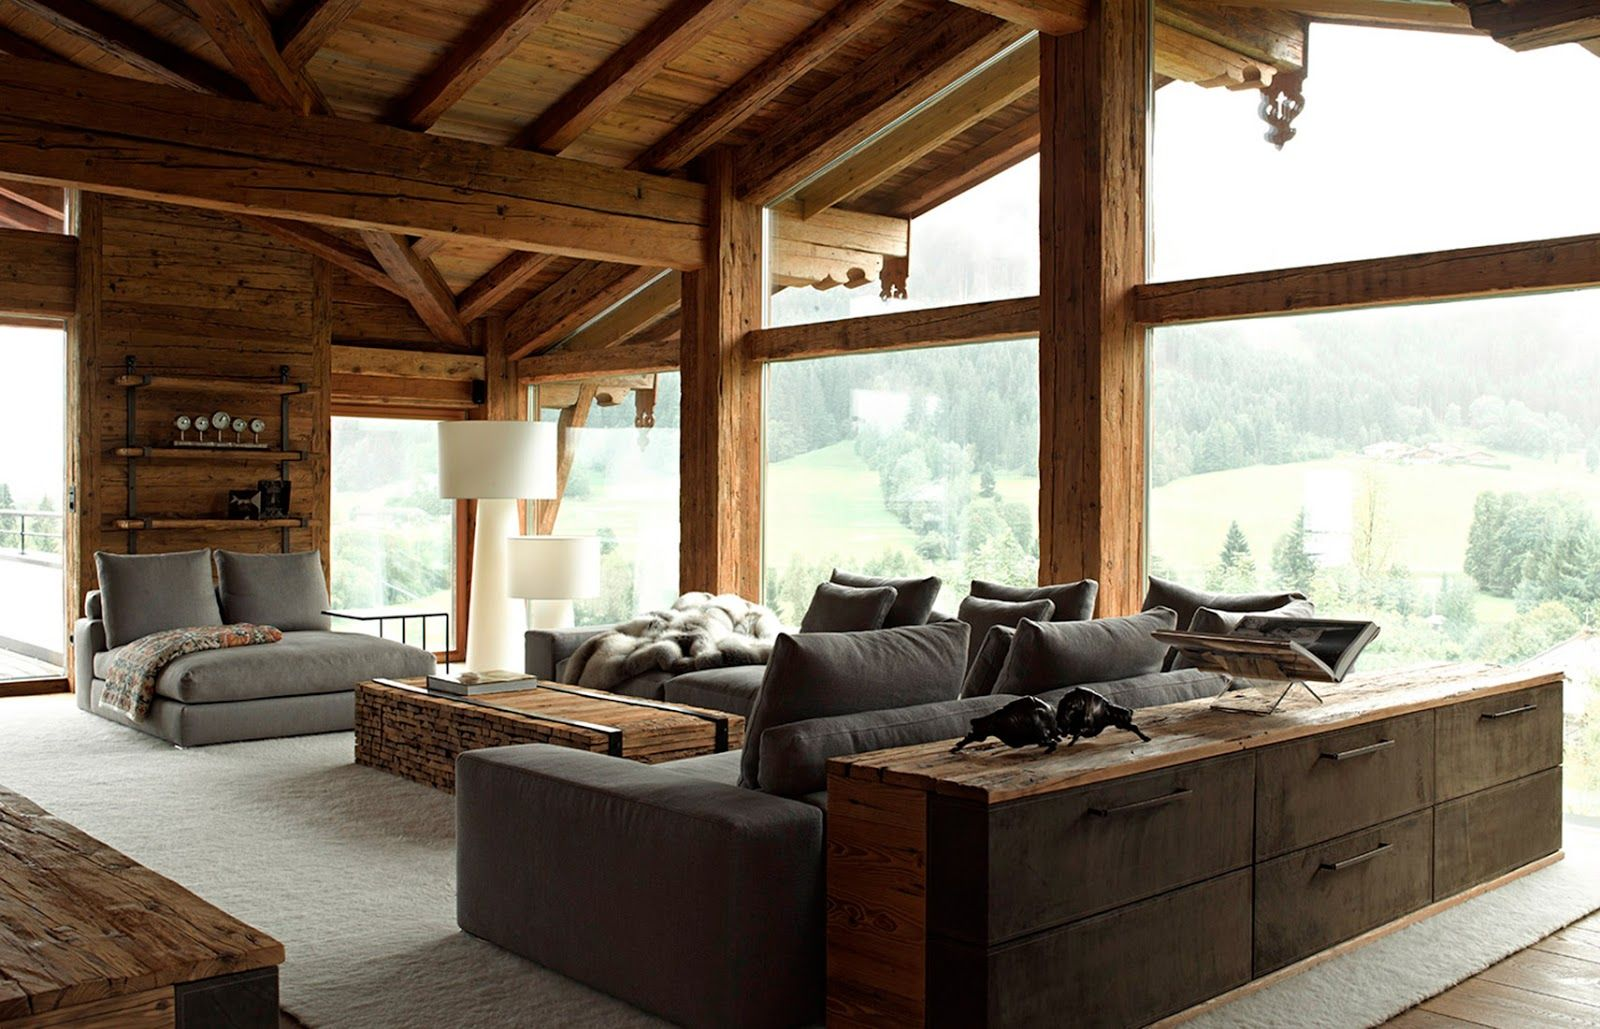 hillside snowcrest the ultimate modern rustic ski chalet in hillside snowcrest the ultimate modern rustic ski chalet in montana ski chalet modern rustic and montana